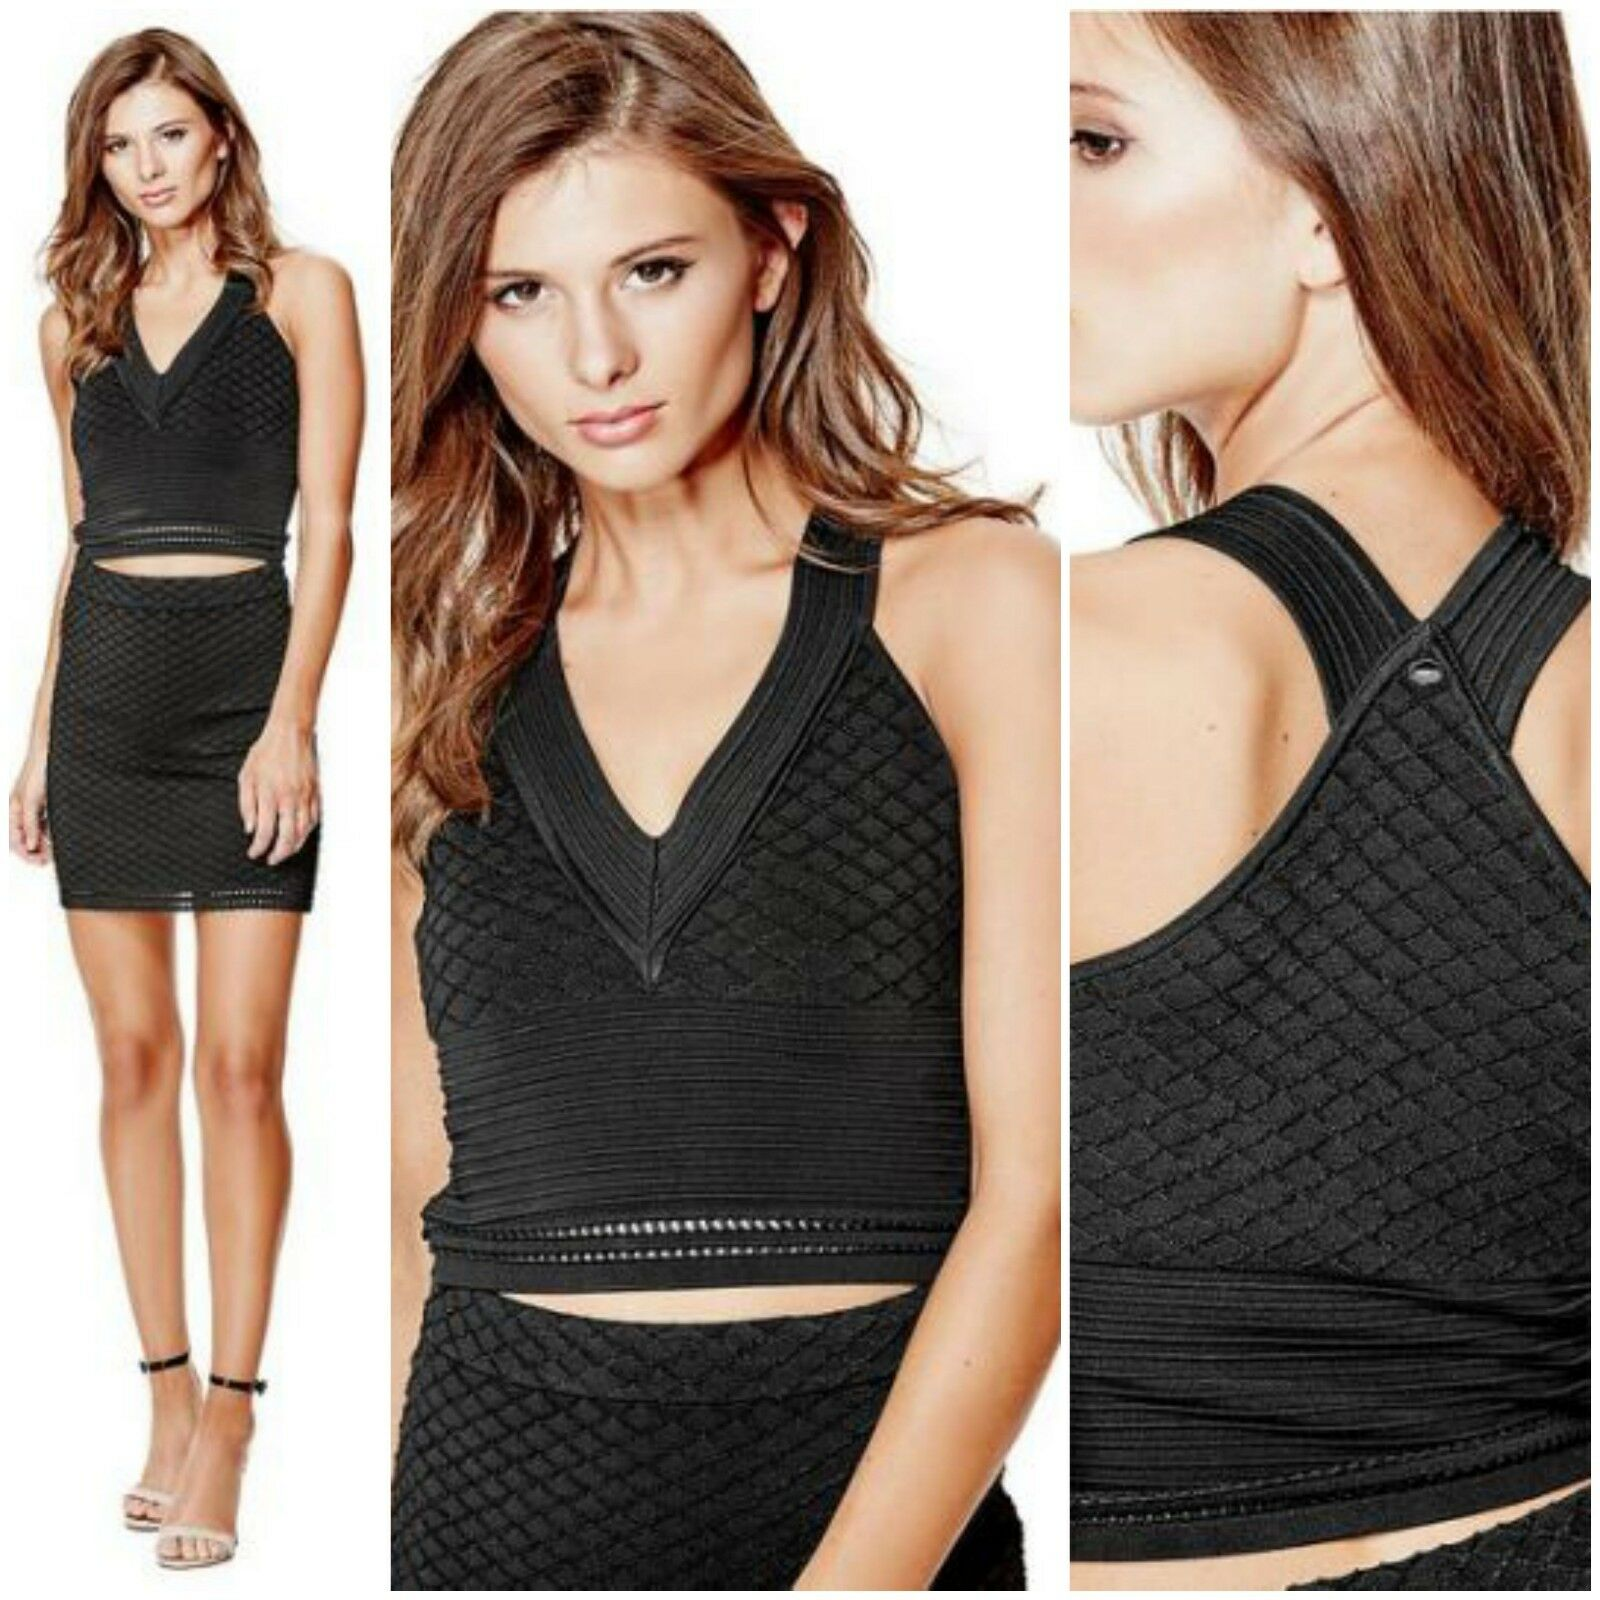 NWT GUESS TEXTUrot BANDAGE CROP TOP Größe S